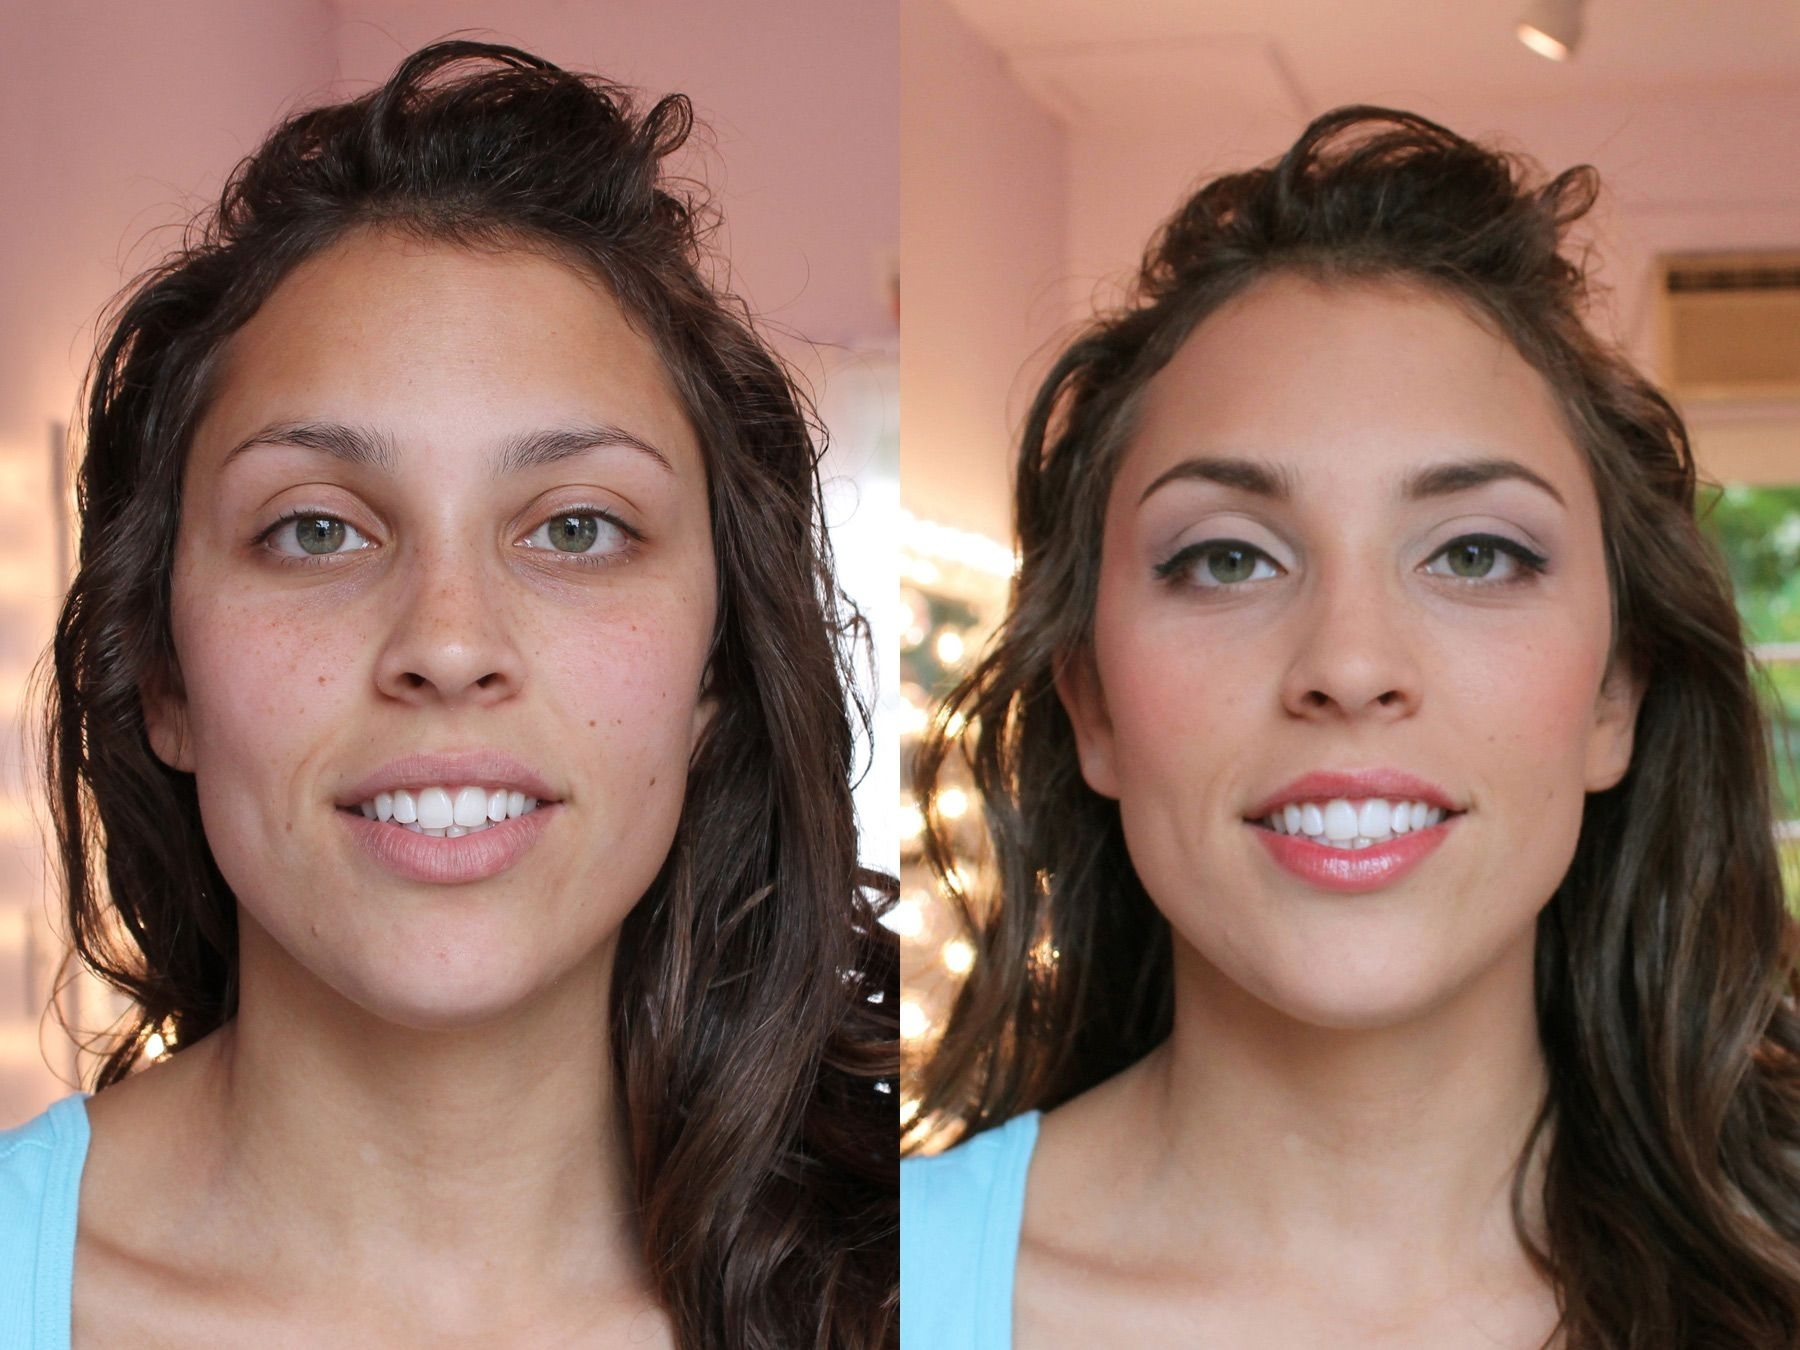 Makeup Before And After    Airbrush Hair Design Portfolio Before intended for Airbrush Makeup Pictures Before And After